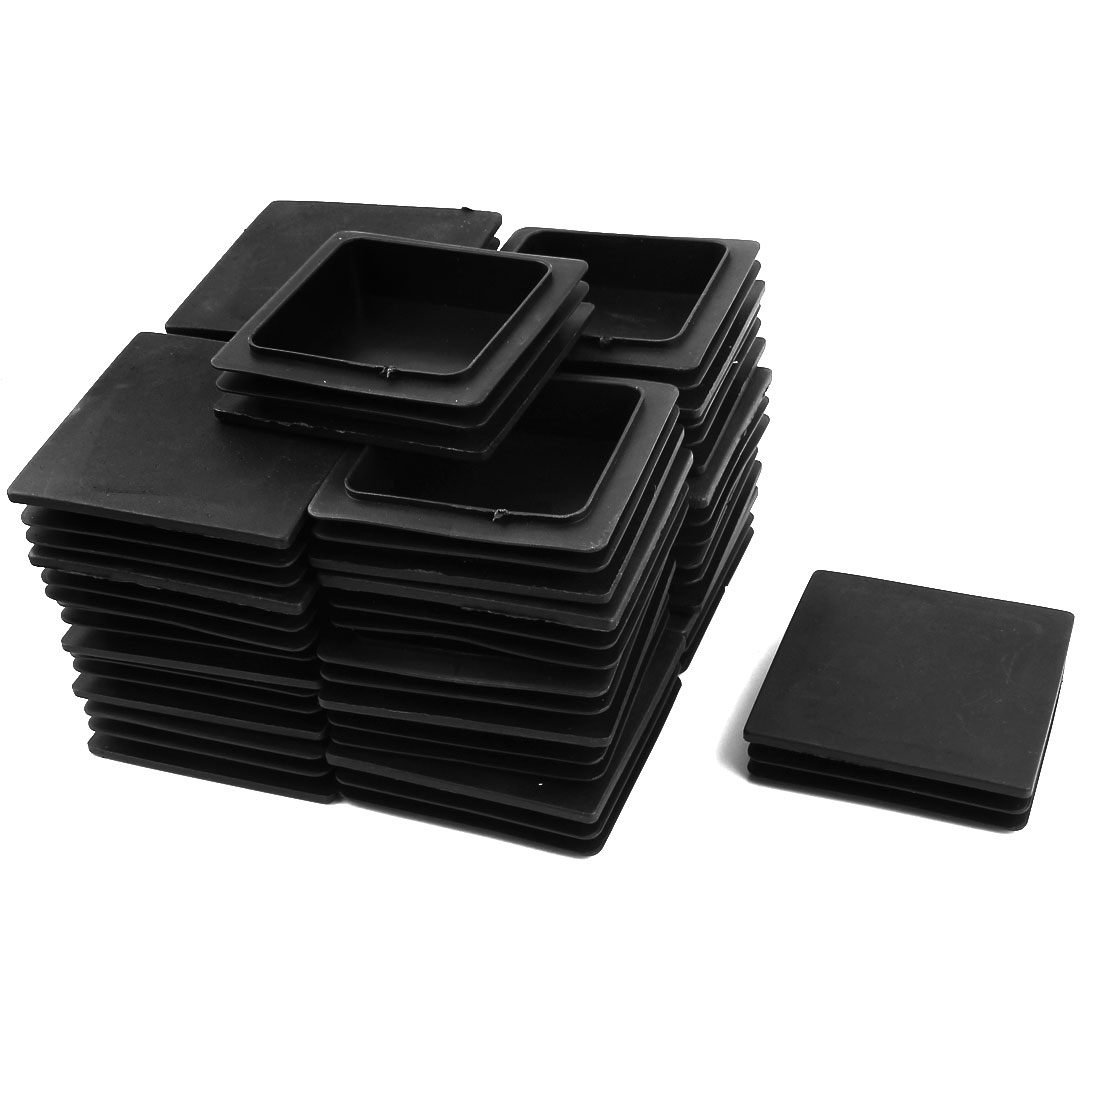 24 Pcs Black Plastic Square Blanking End Caps Tubing Tube Inserts 100mm x 100mm